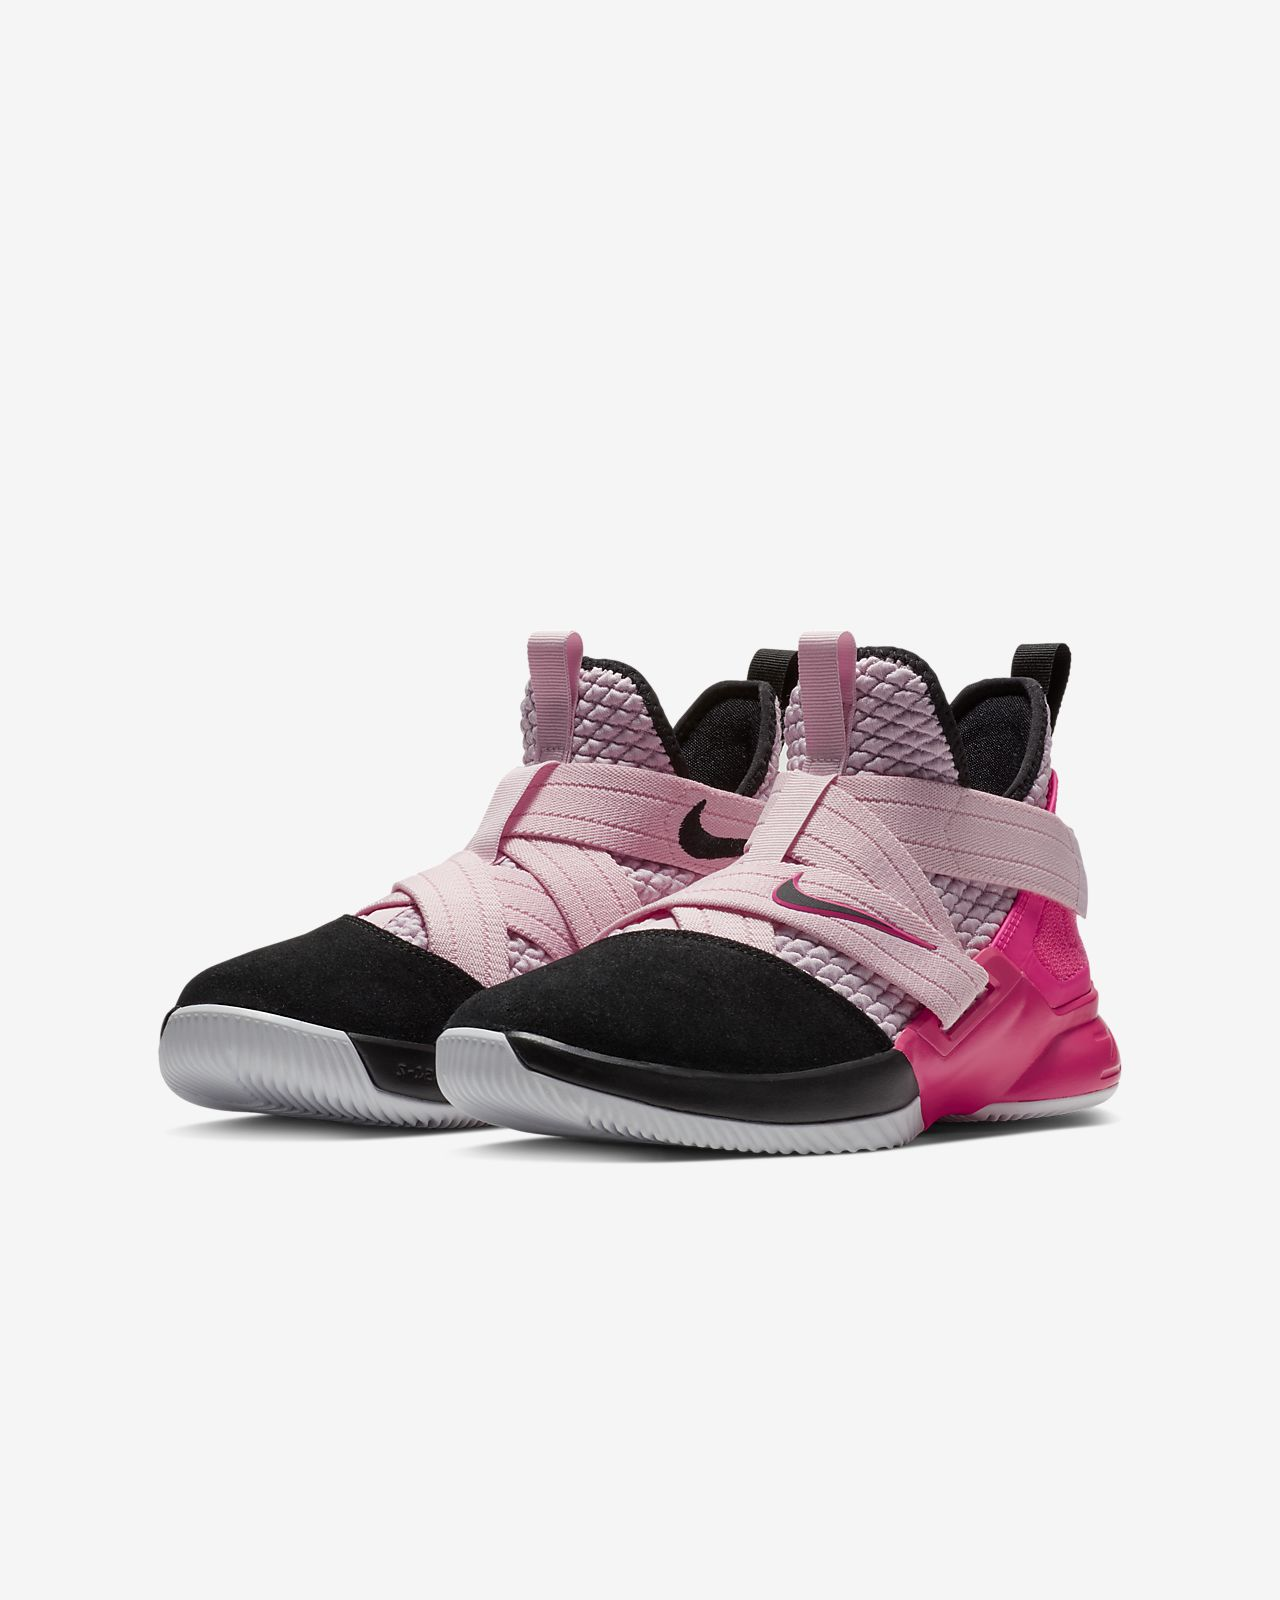 a248a8c76403 LeBron Soldier XII Big Kids  Basketball Shoe. Nike.com